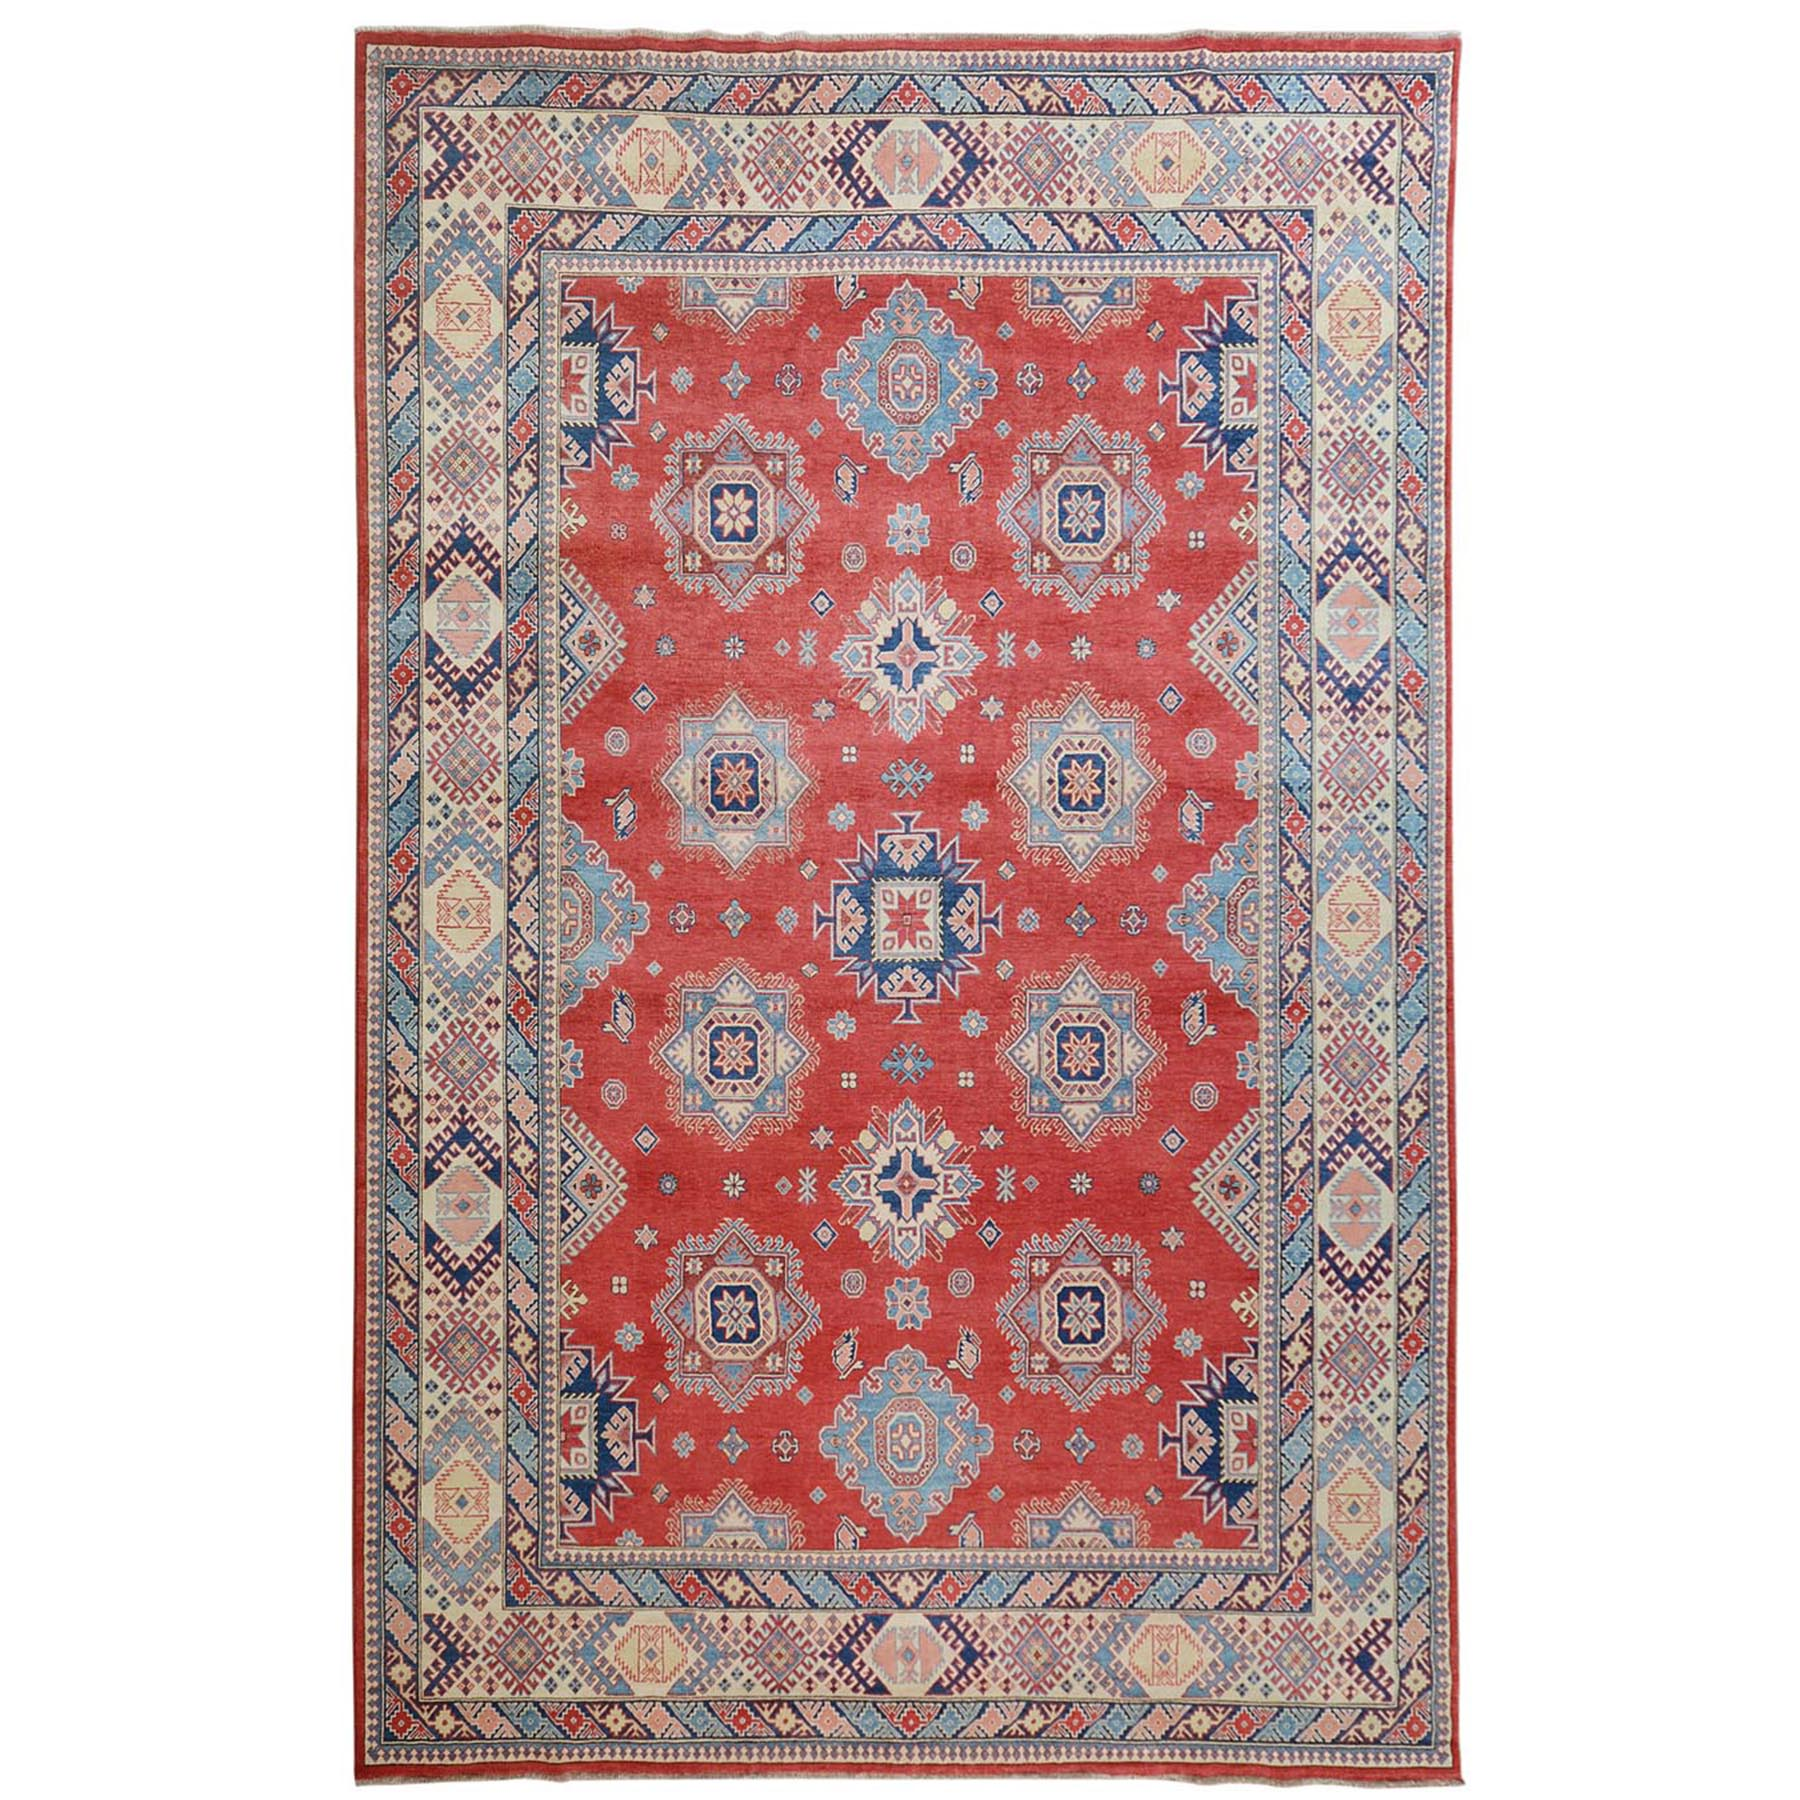 """10'X13'6"""" Red Special Kazak Geometric Design Pure Wool Hand Knotted Oriental Rug moae70ab"""